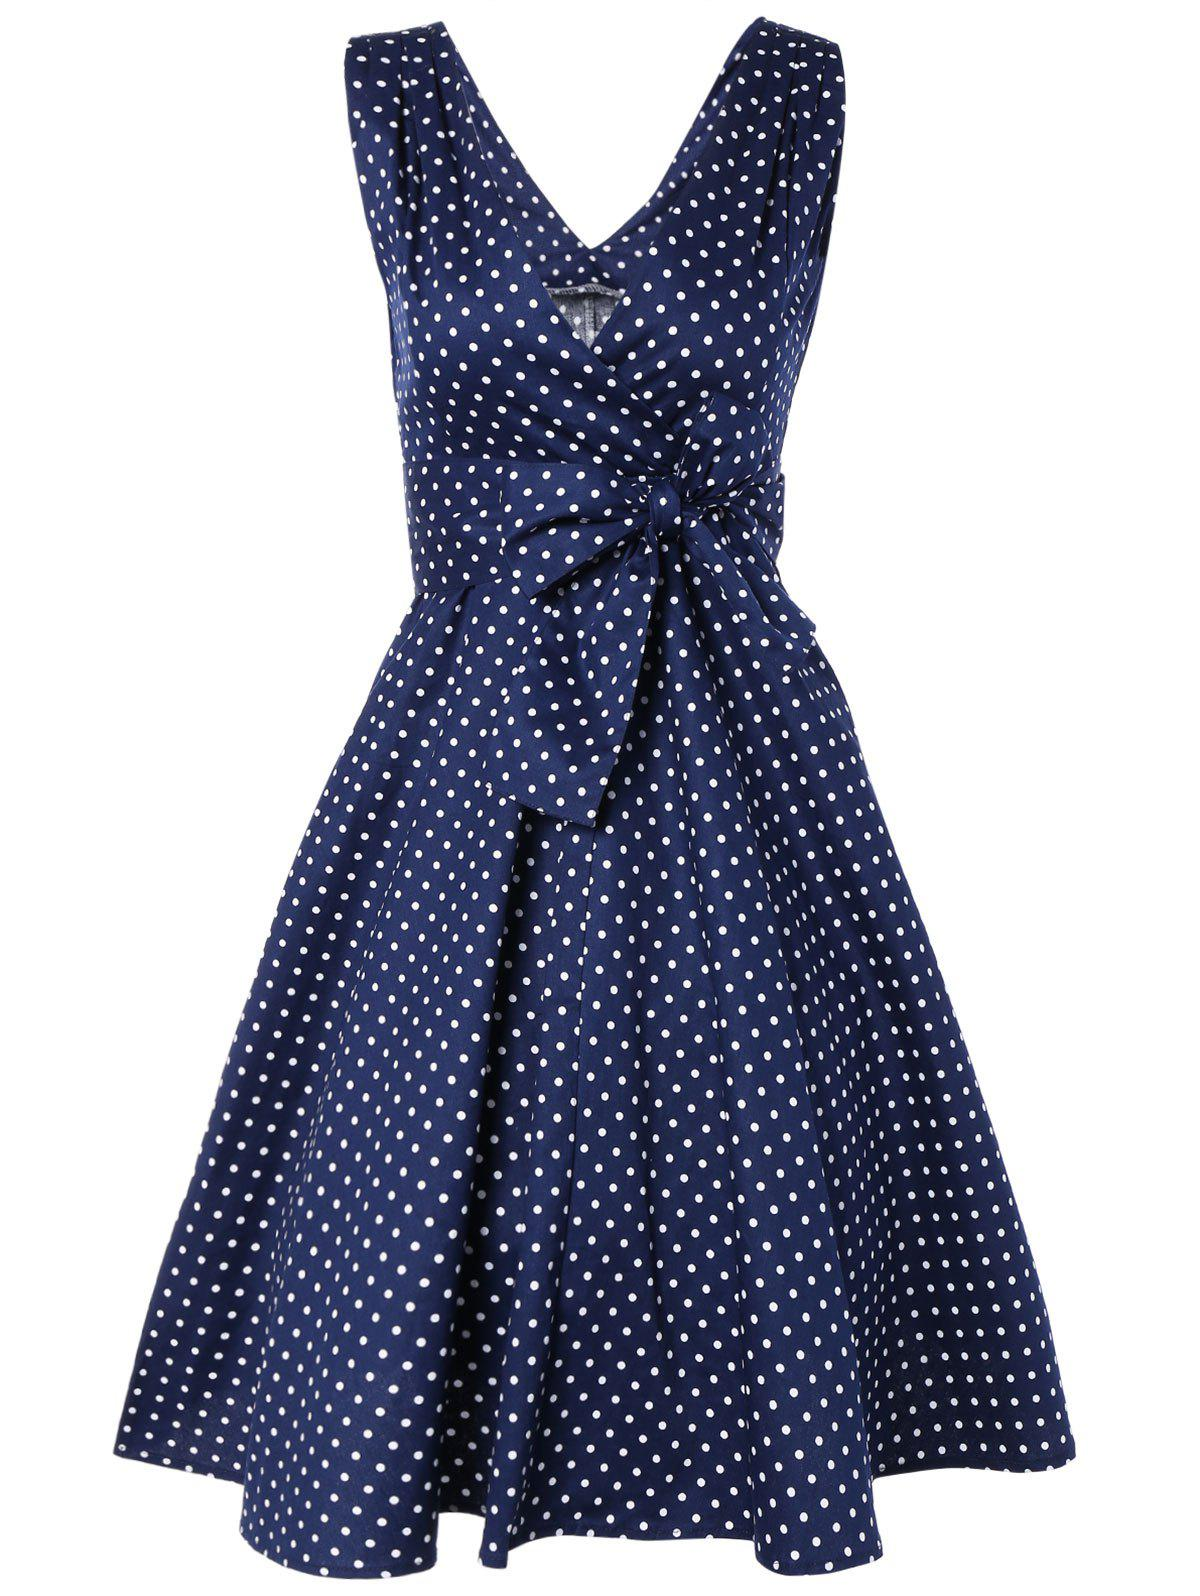 Bowknot Polka Dot Swing Fit and Flare Dress - NAVY BLUE M